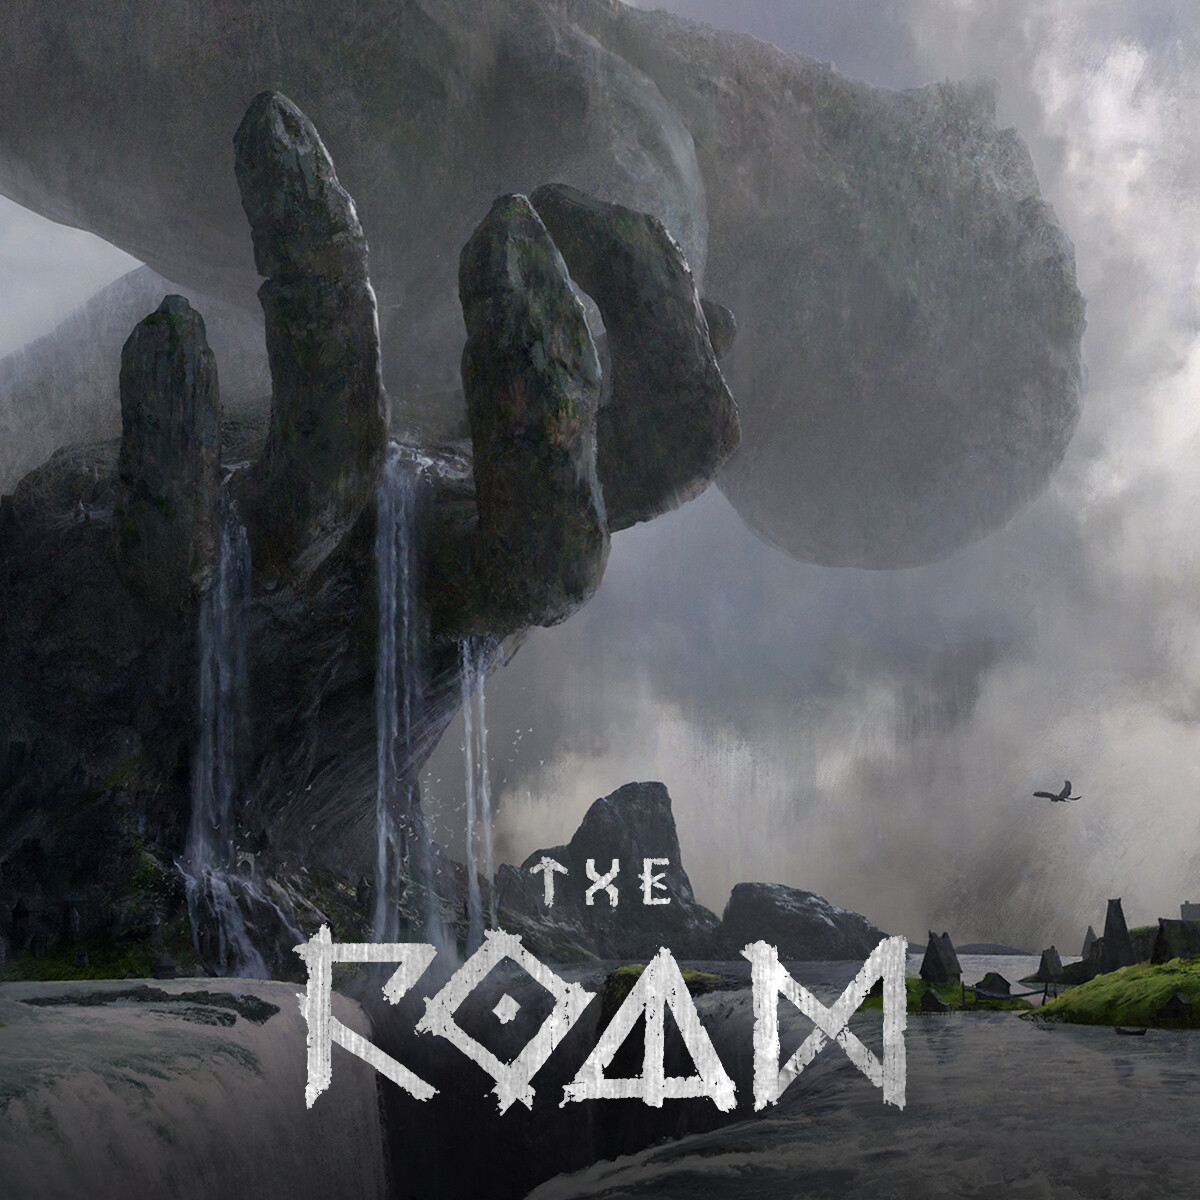 The Roam - Gate of the Palm